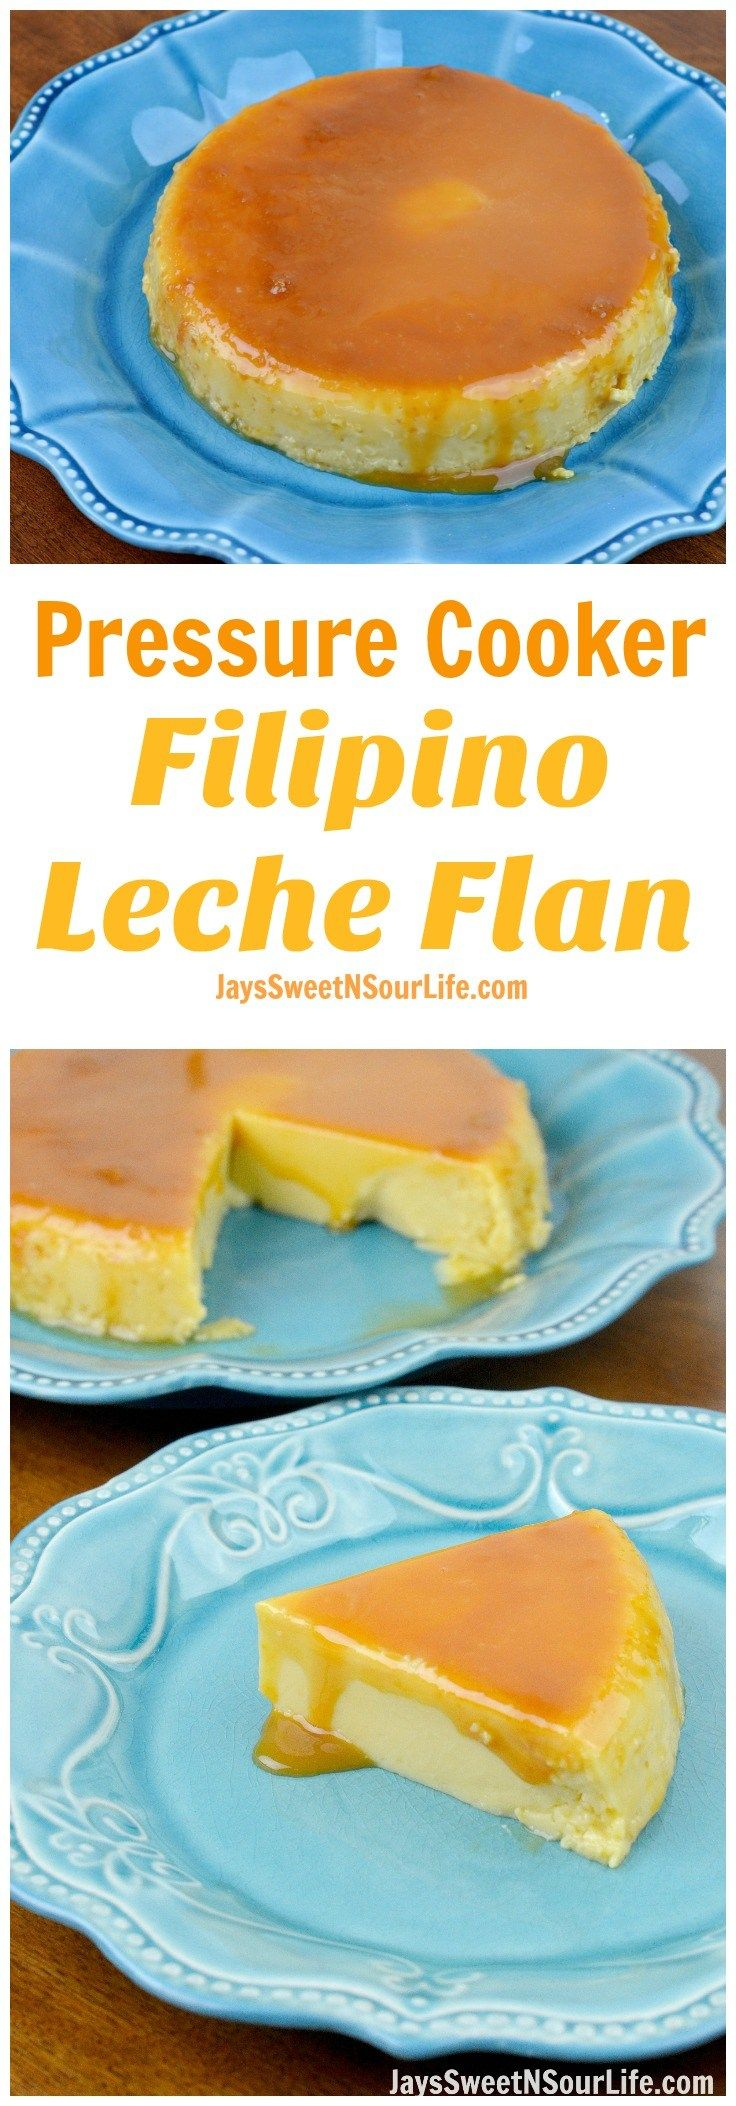 Try my Pressure Cooker Filipino Leche Flan recipe, it is so delicious and so much easier and quicker to make in your pressure cooker.